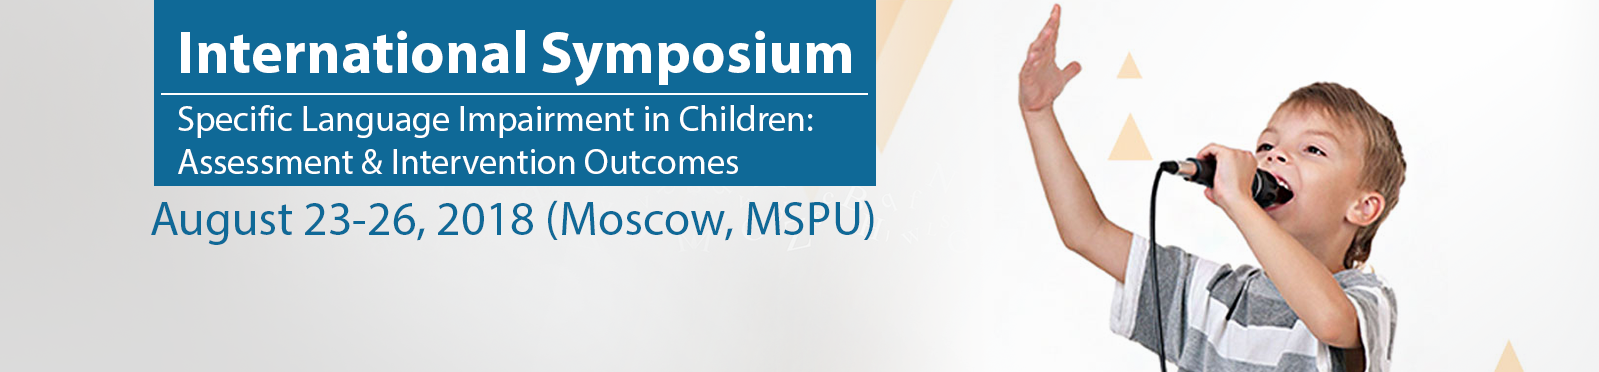 International Symposium Specific Language Impairment in Children: Assessment & Intervention Outcomes August 23-26, 2018 (Moscow, MSPU